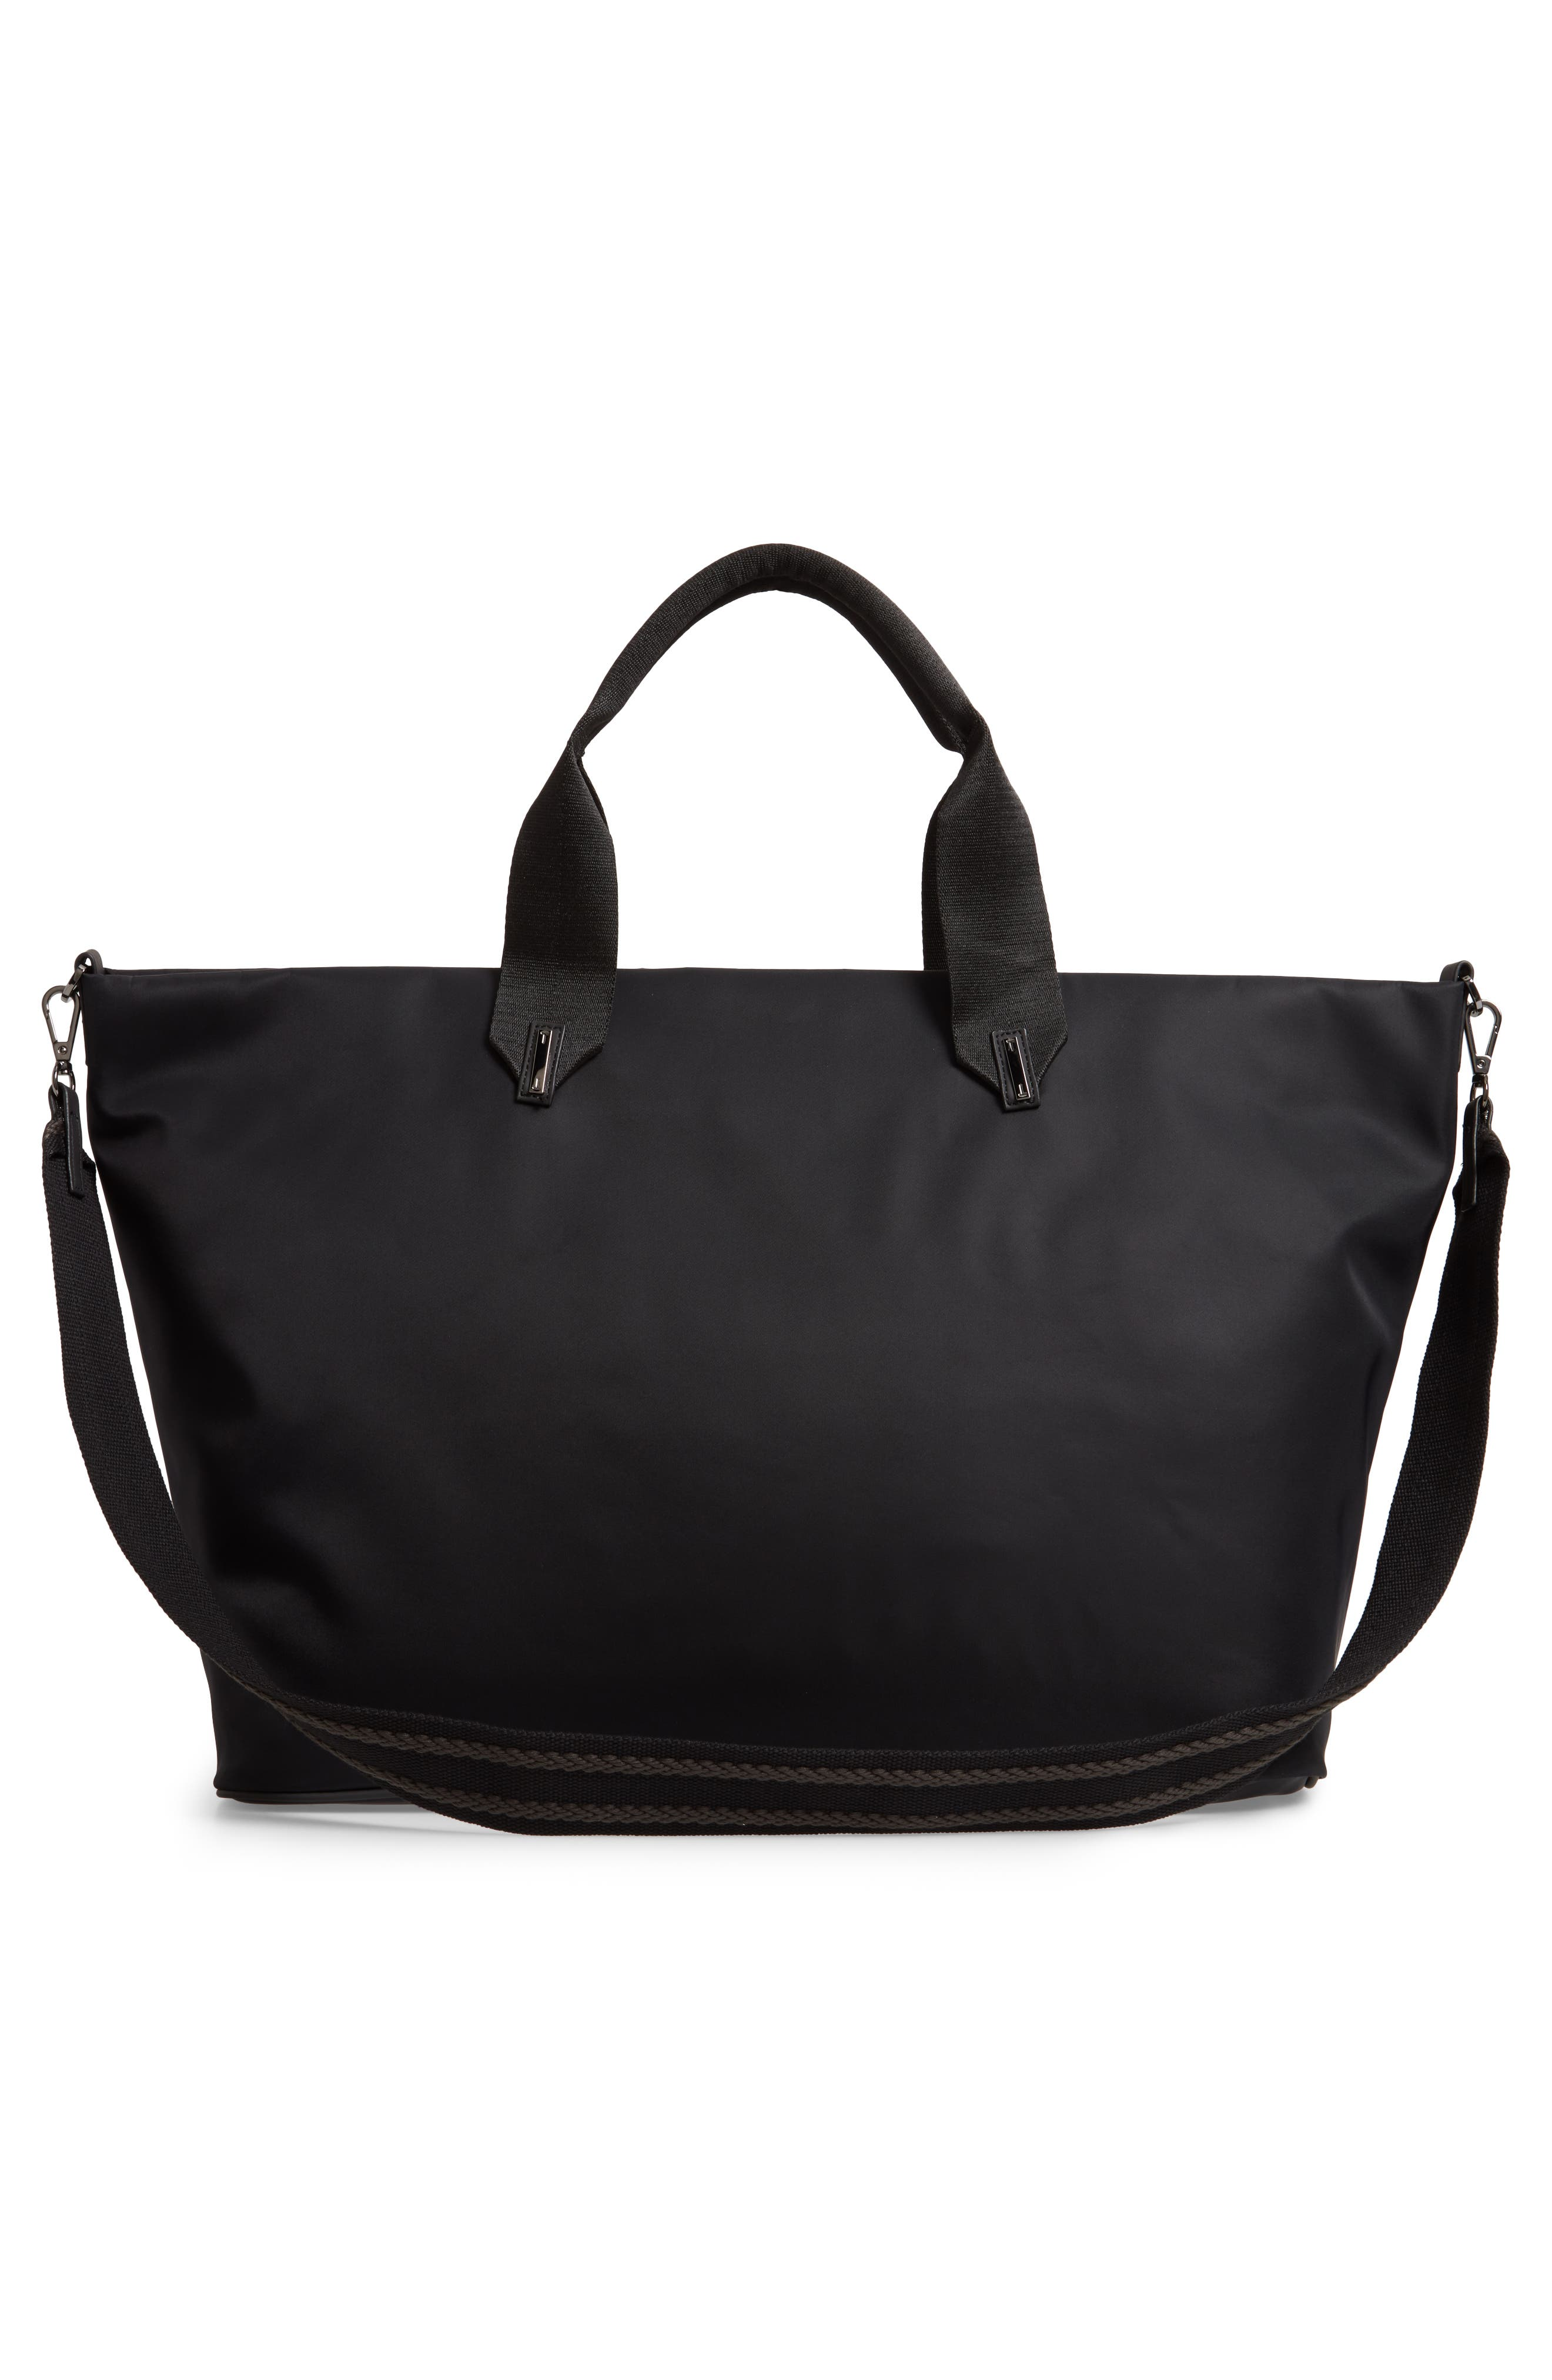 Ted Baker London Totes Large Mabele Tote